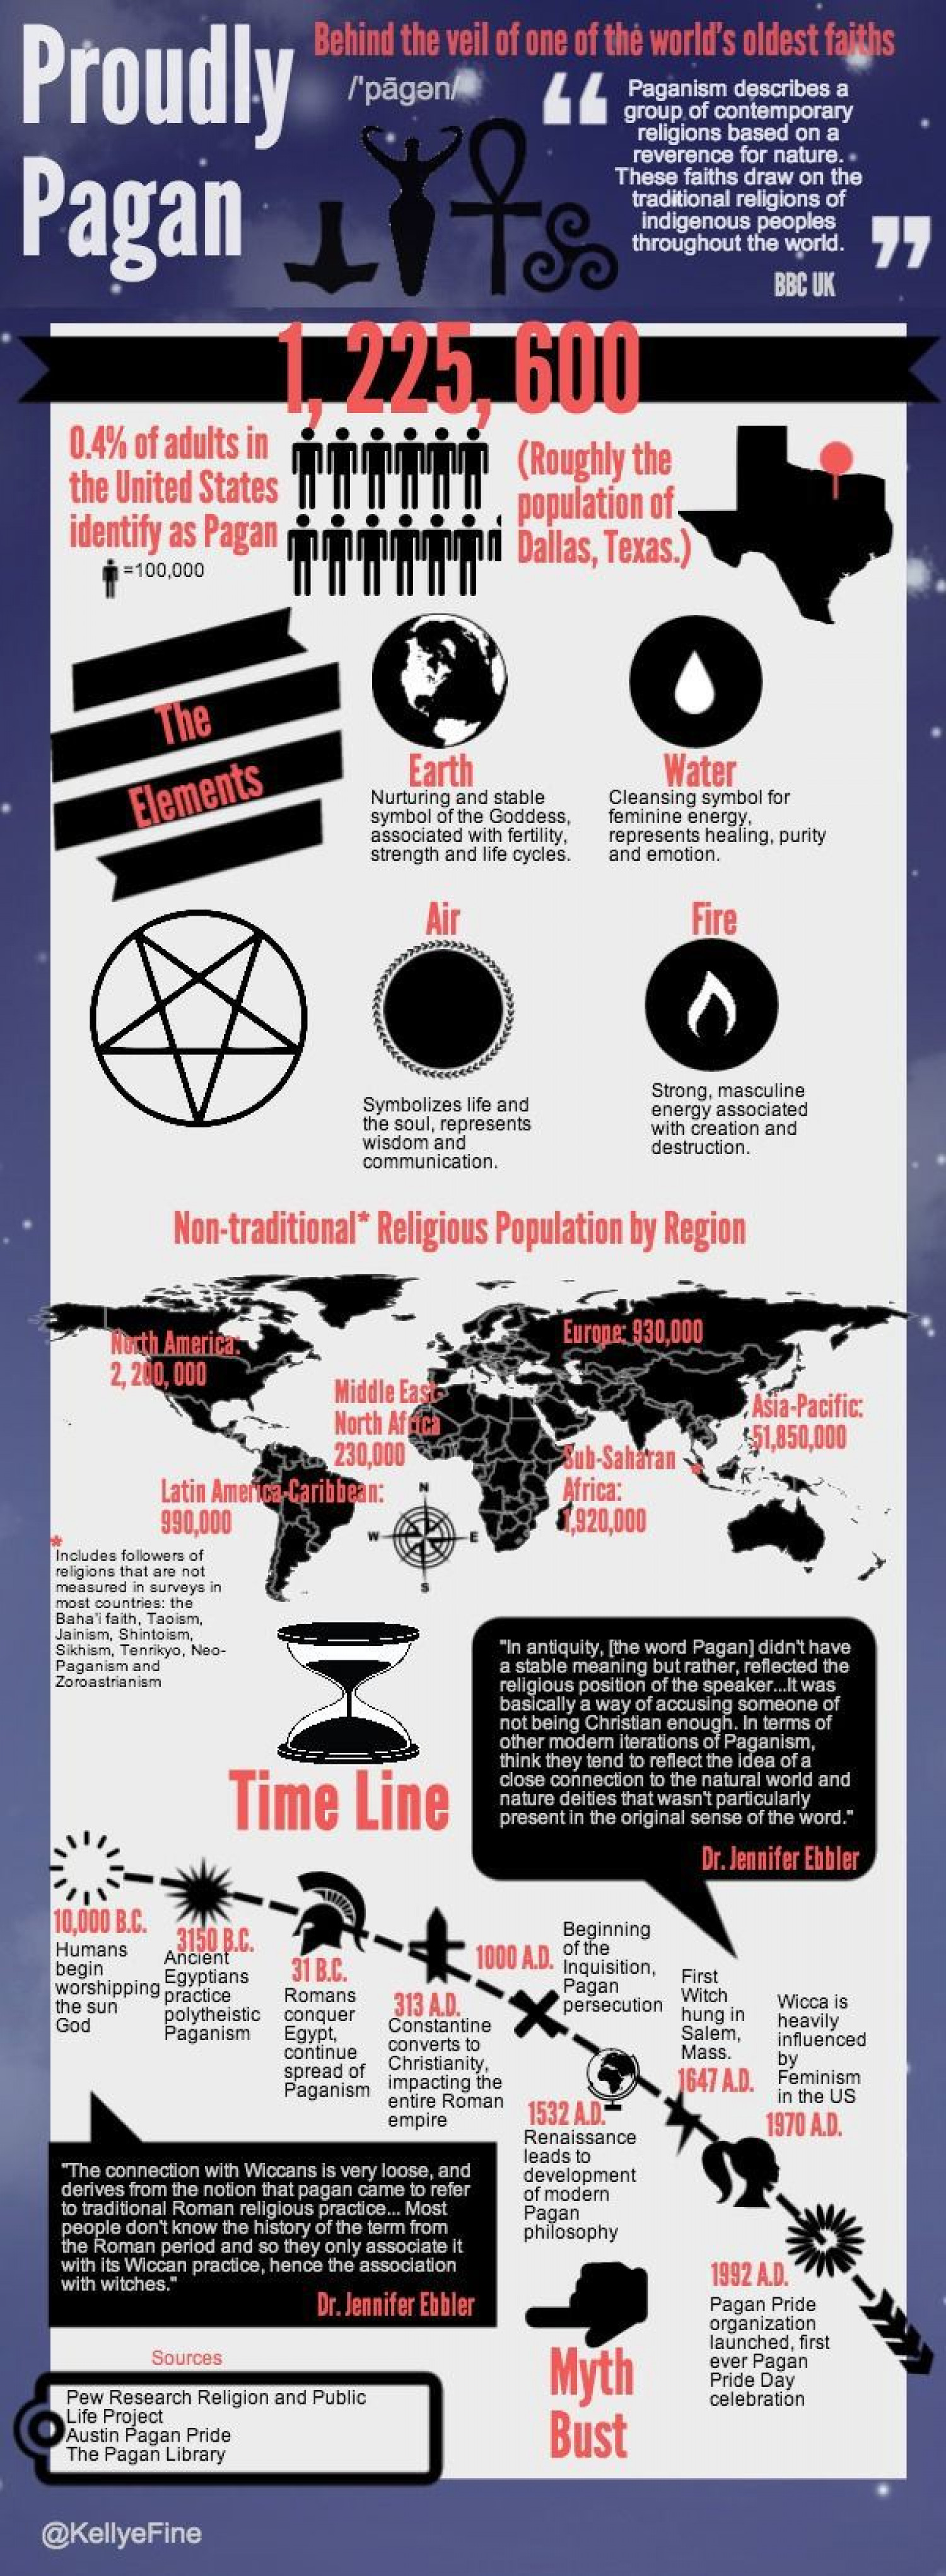 Proudly Pagan Infographic